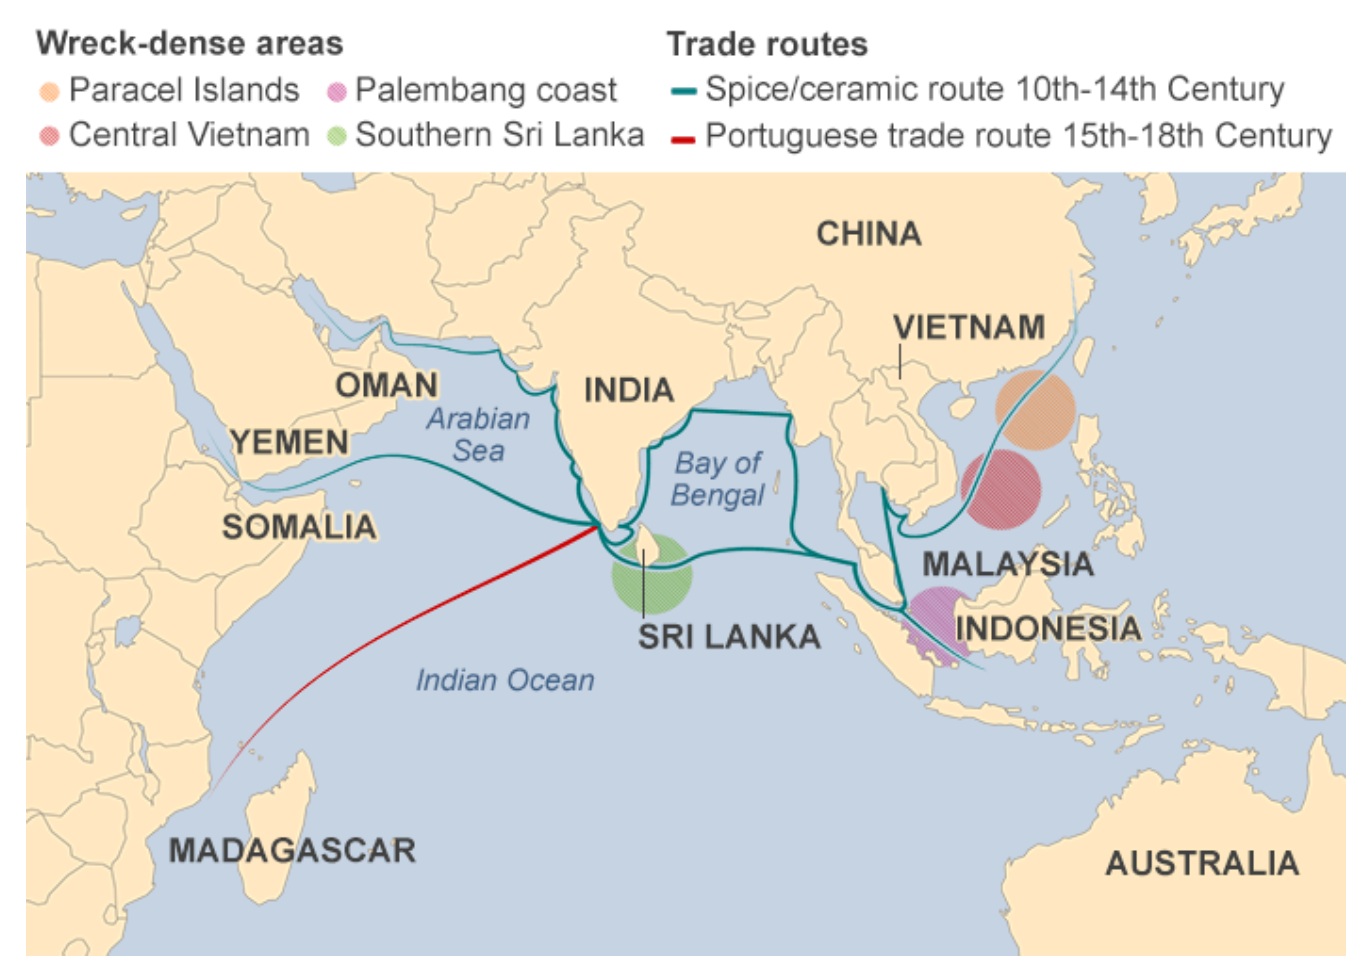 Key Trading Routes and Wreck Sites